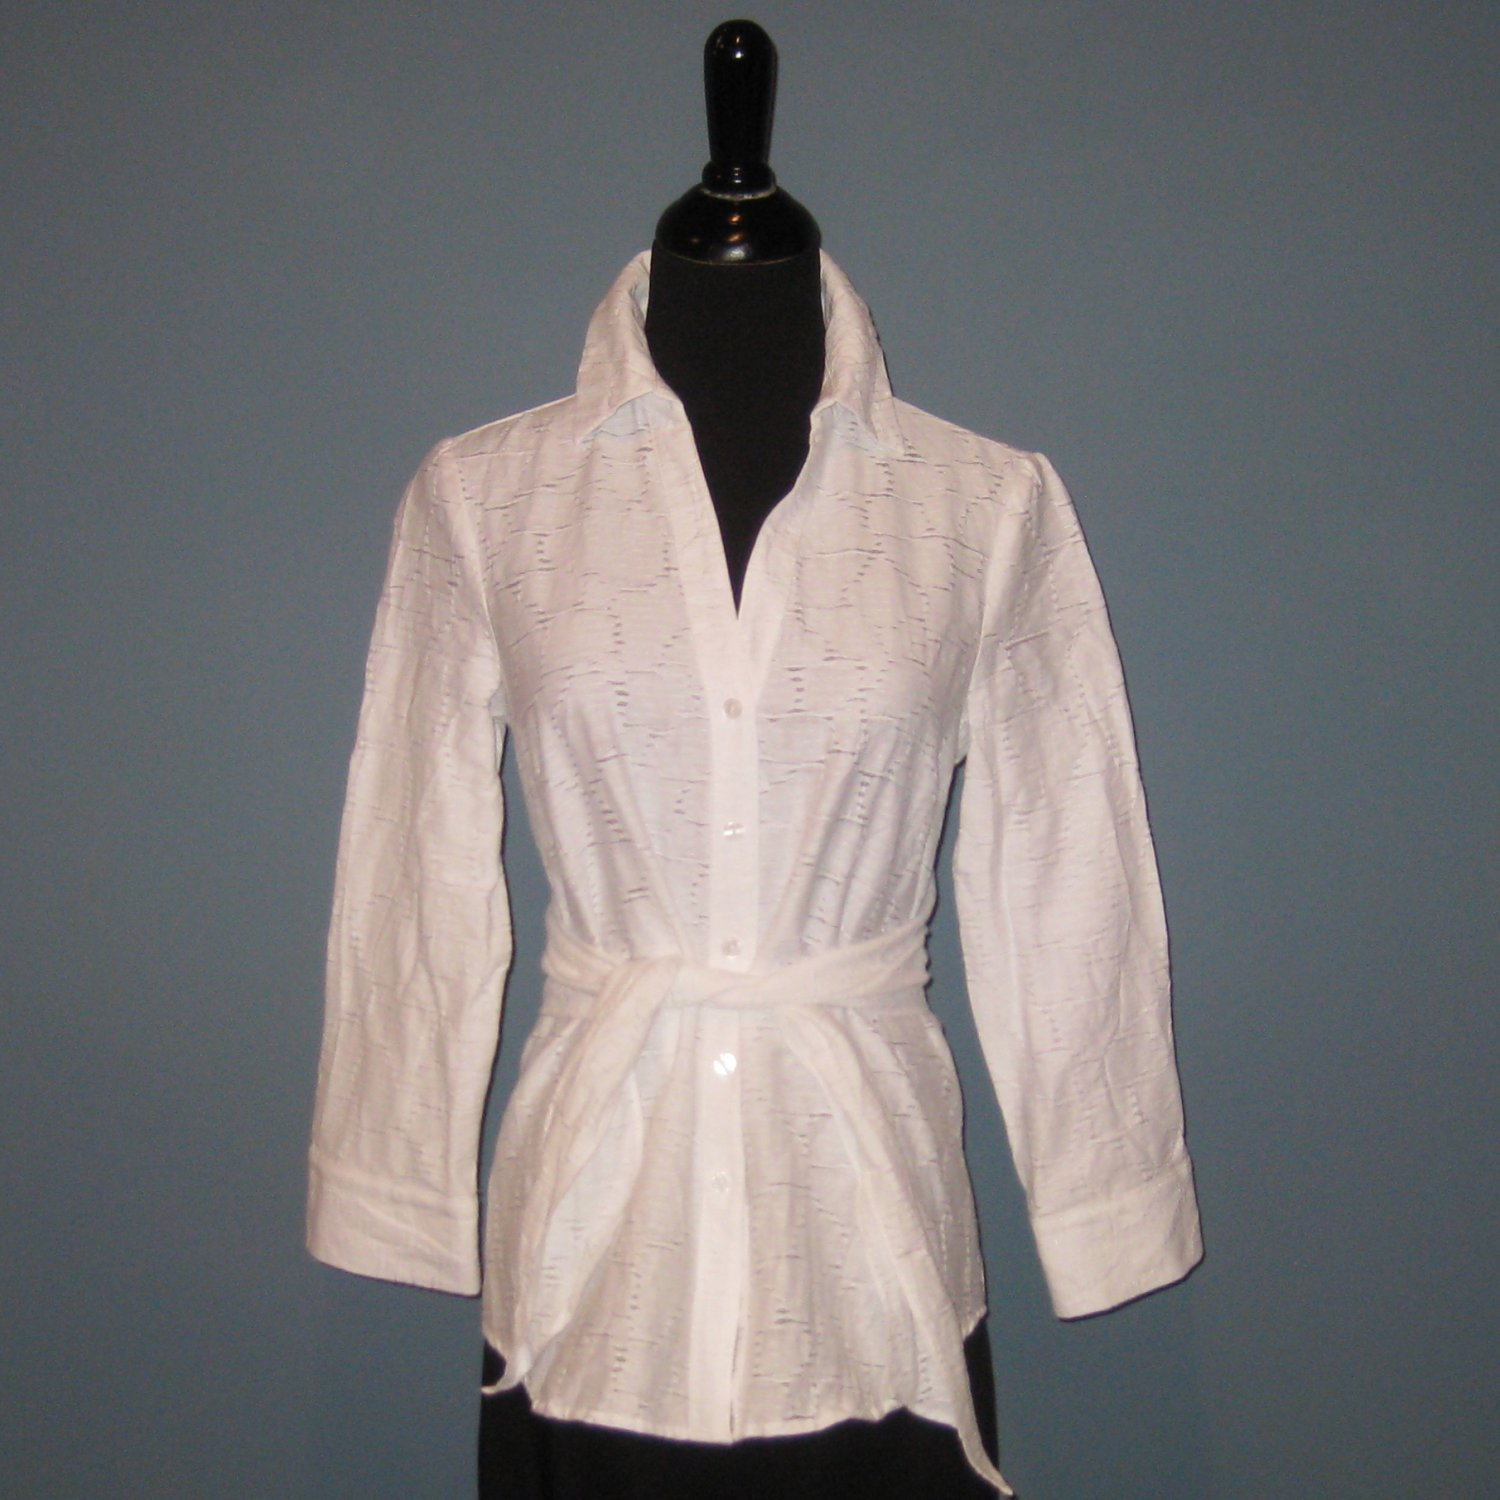 Pre-Owned Peter Nygard White Cotton Blend Self Tie 3/4 Sleeve Blouse - 4P